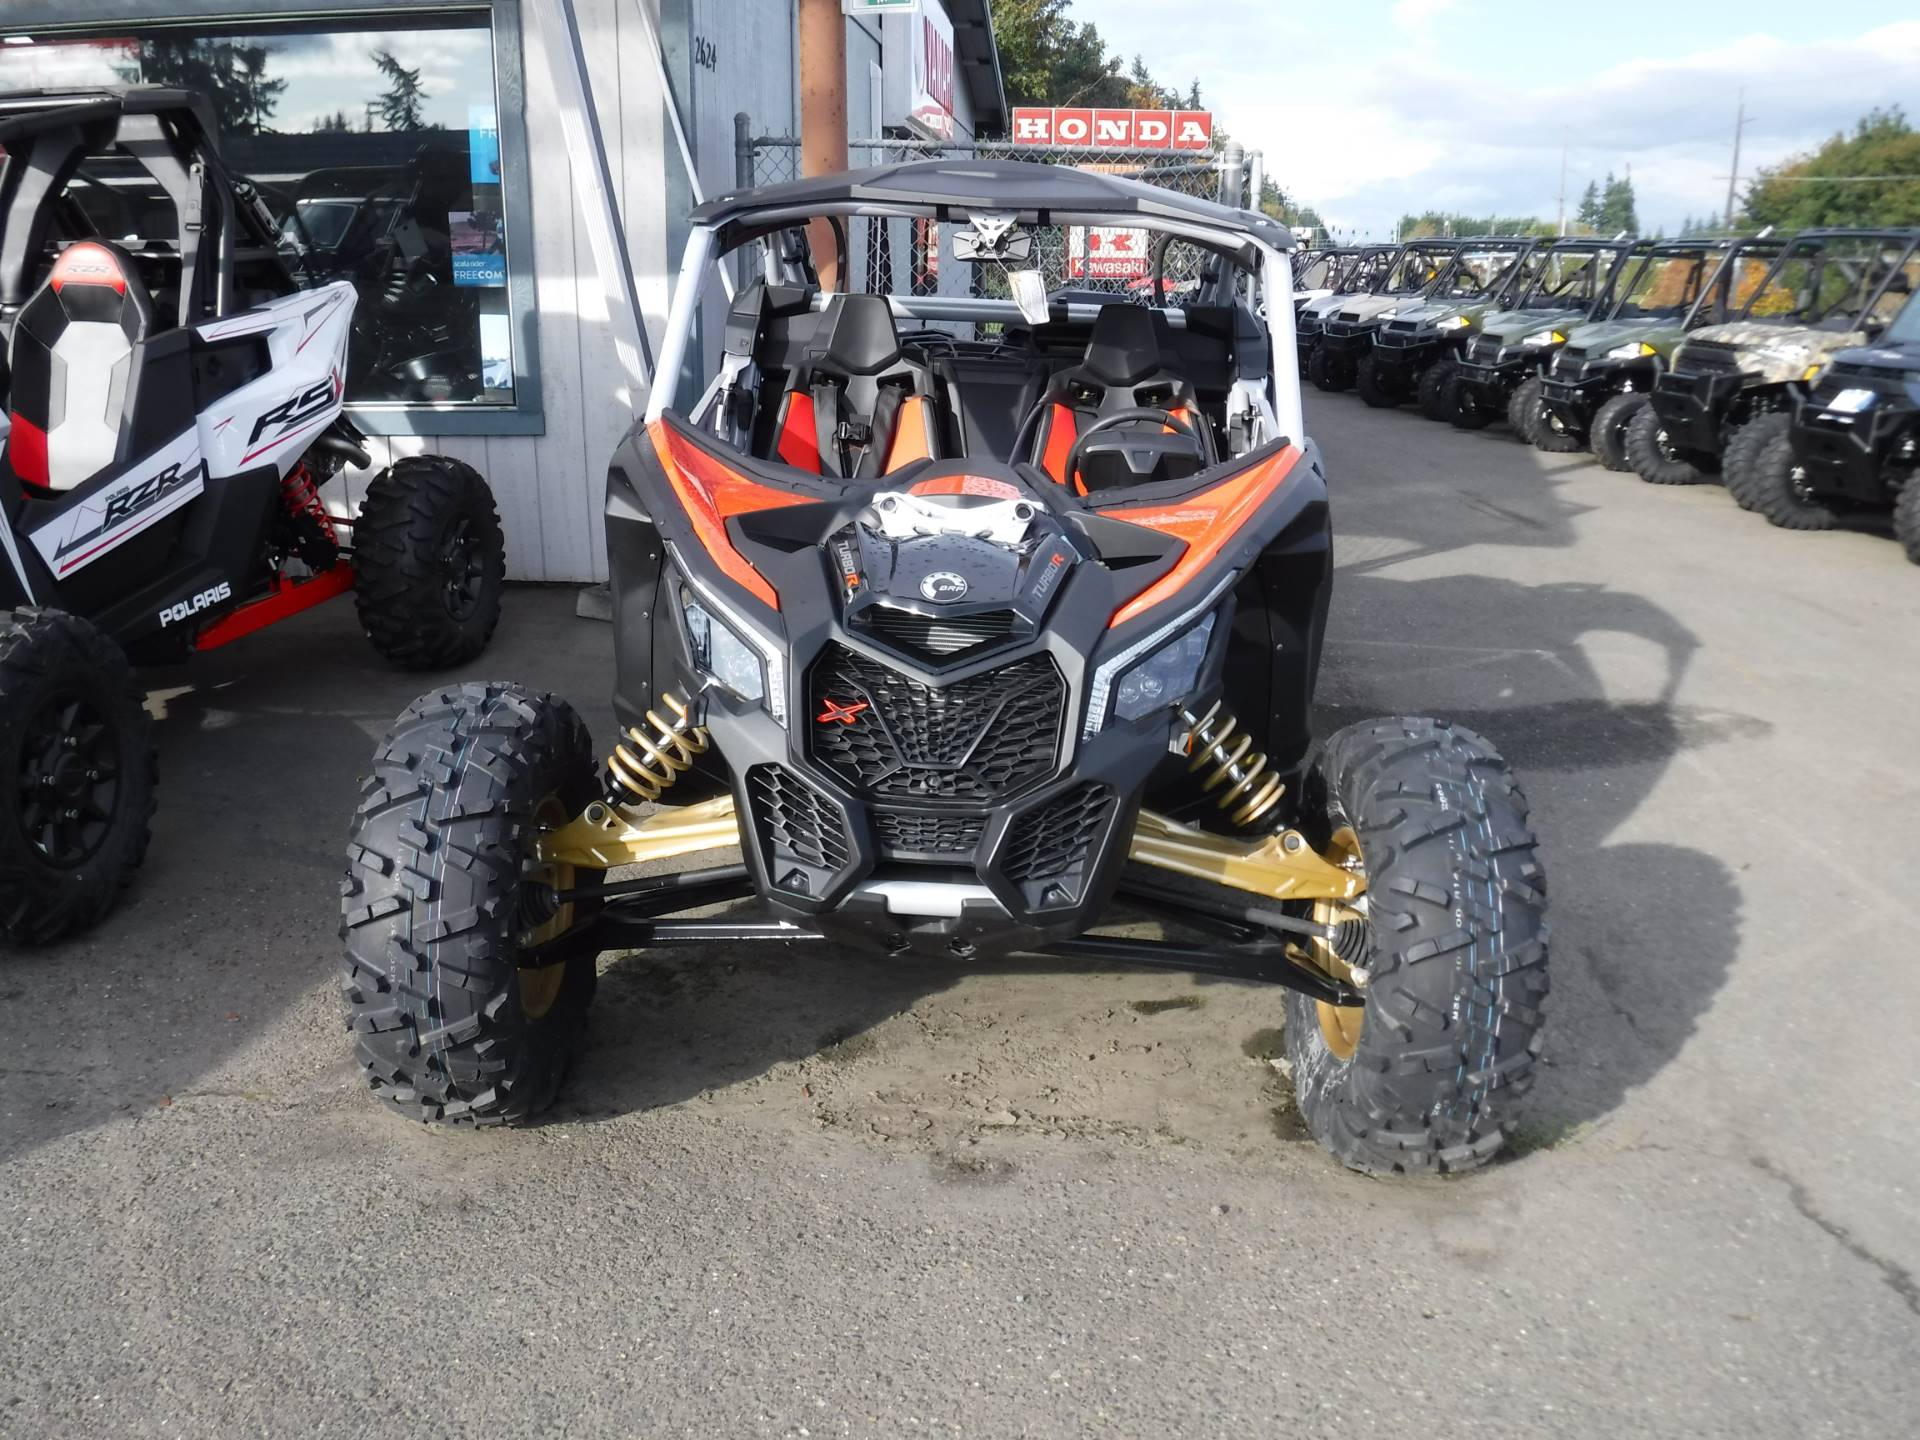 2019 Can-Am Maverick X3 X rs Turbo R in Port Angeles, Washington - Photo 4